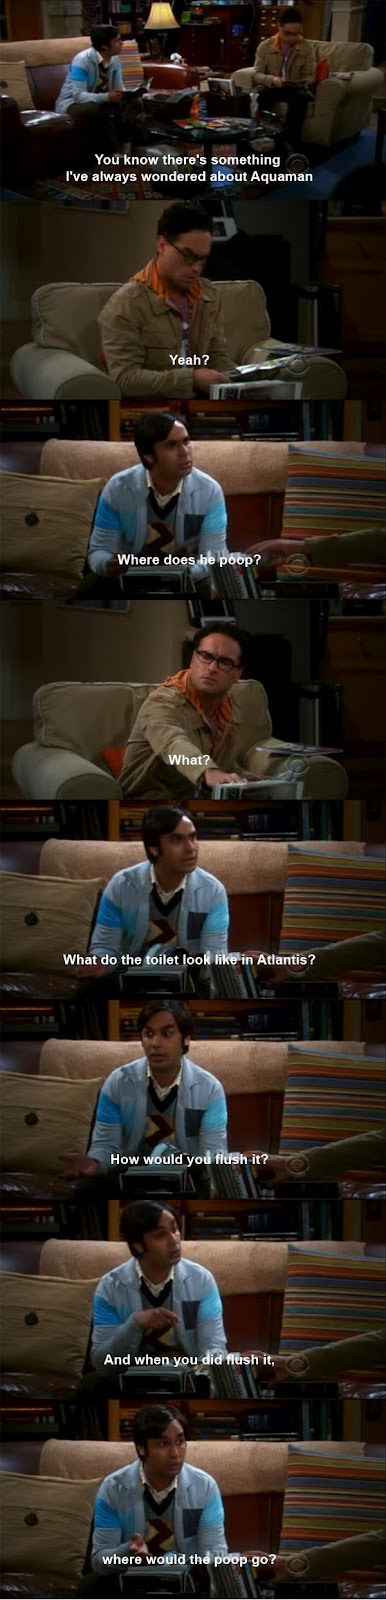 The Funny Question About Aquaman By Raj In Big Bang Theory